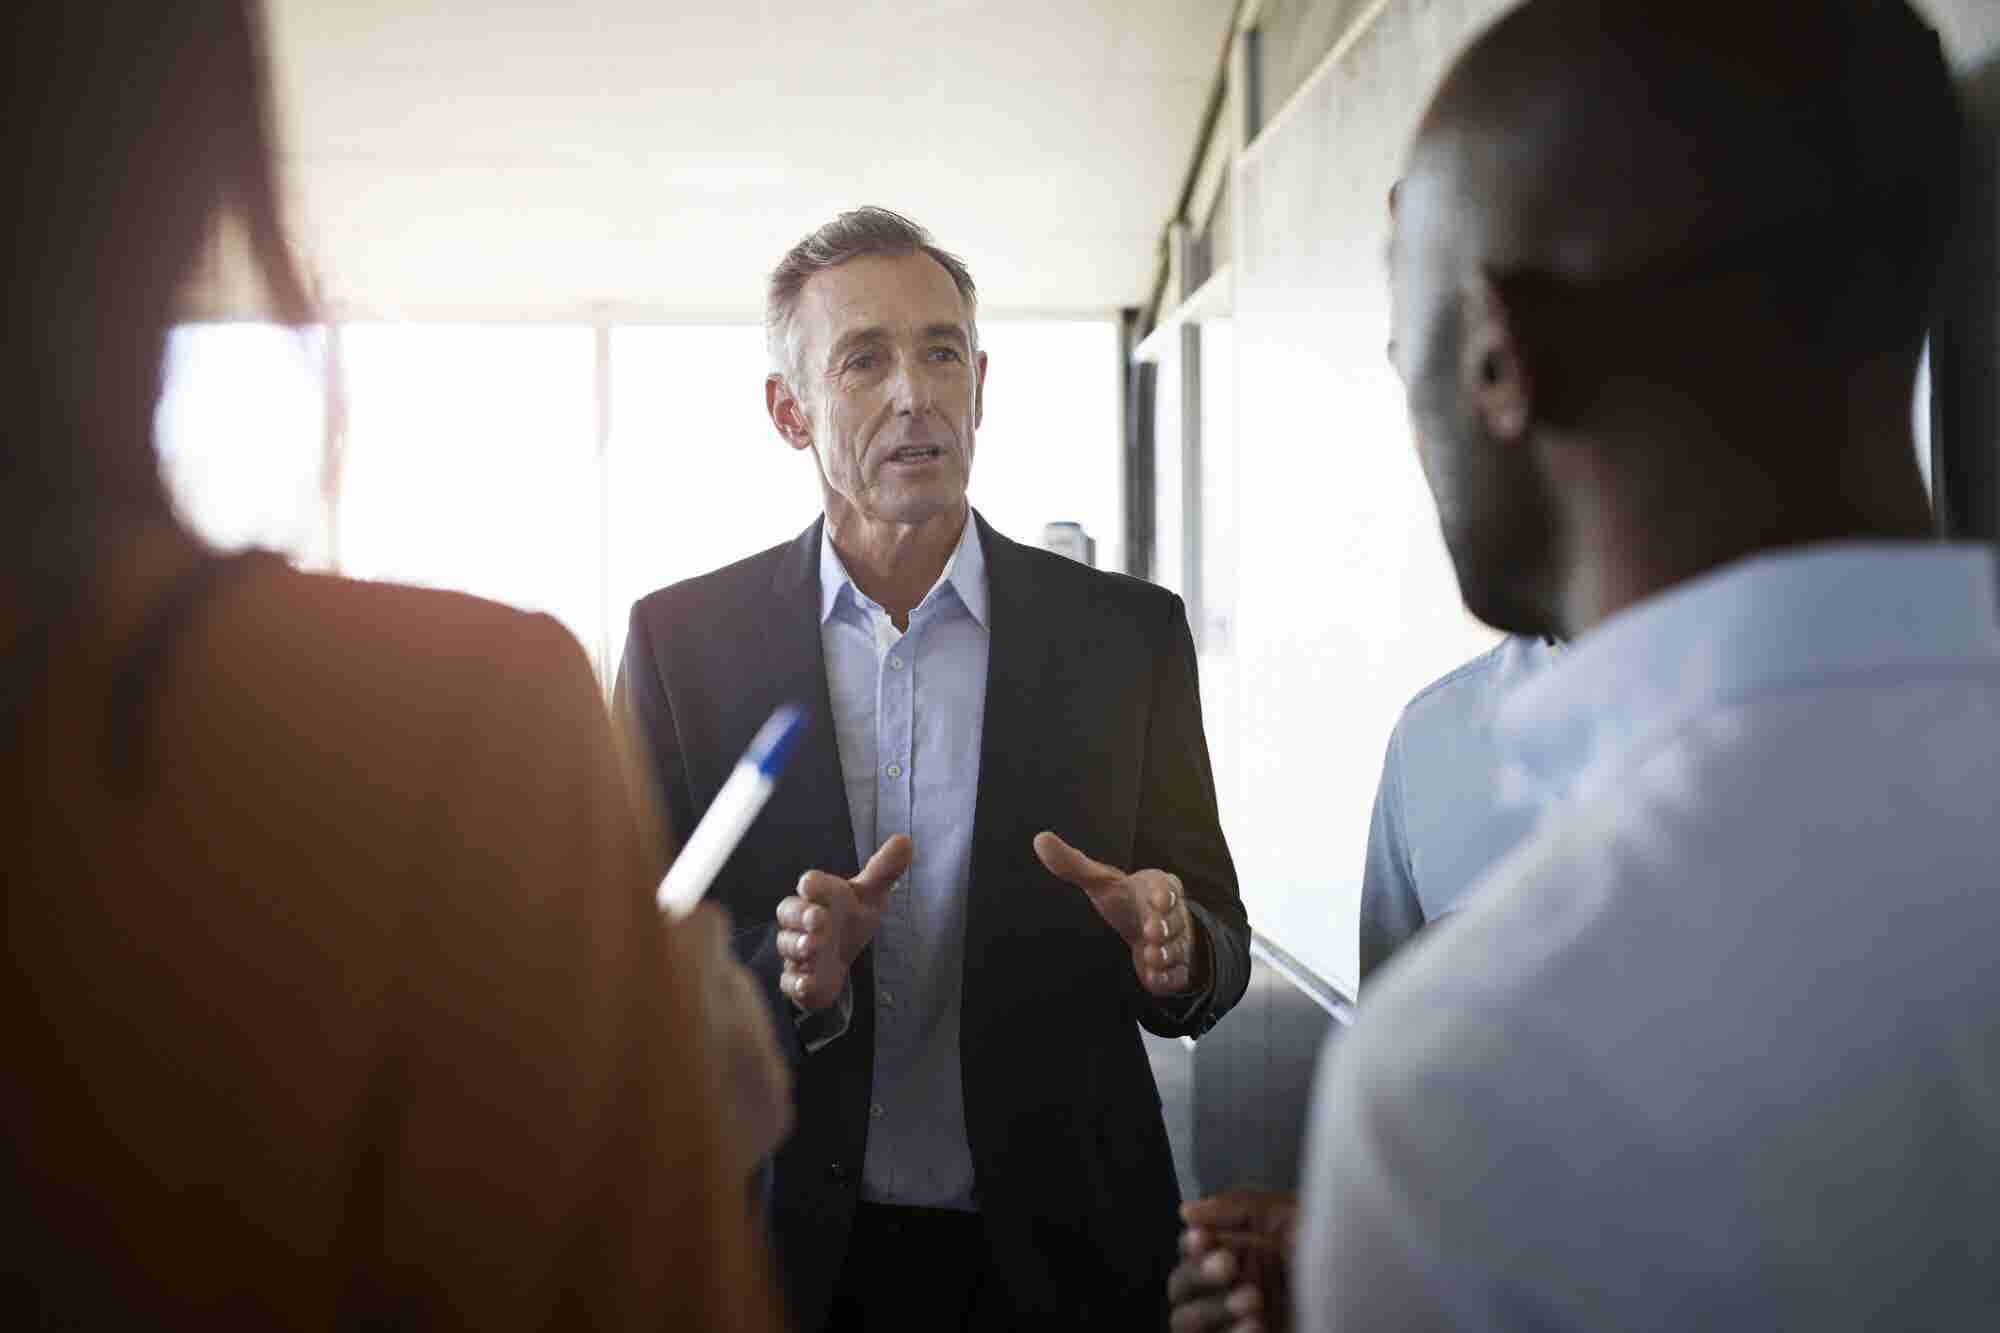 3 Ways Increasing Your Empathy Makes You a More Effective Leader